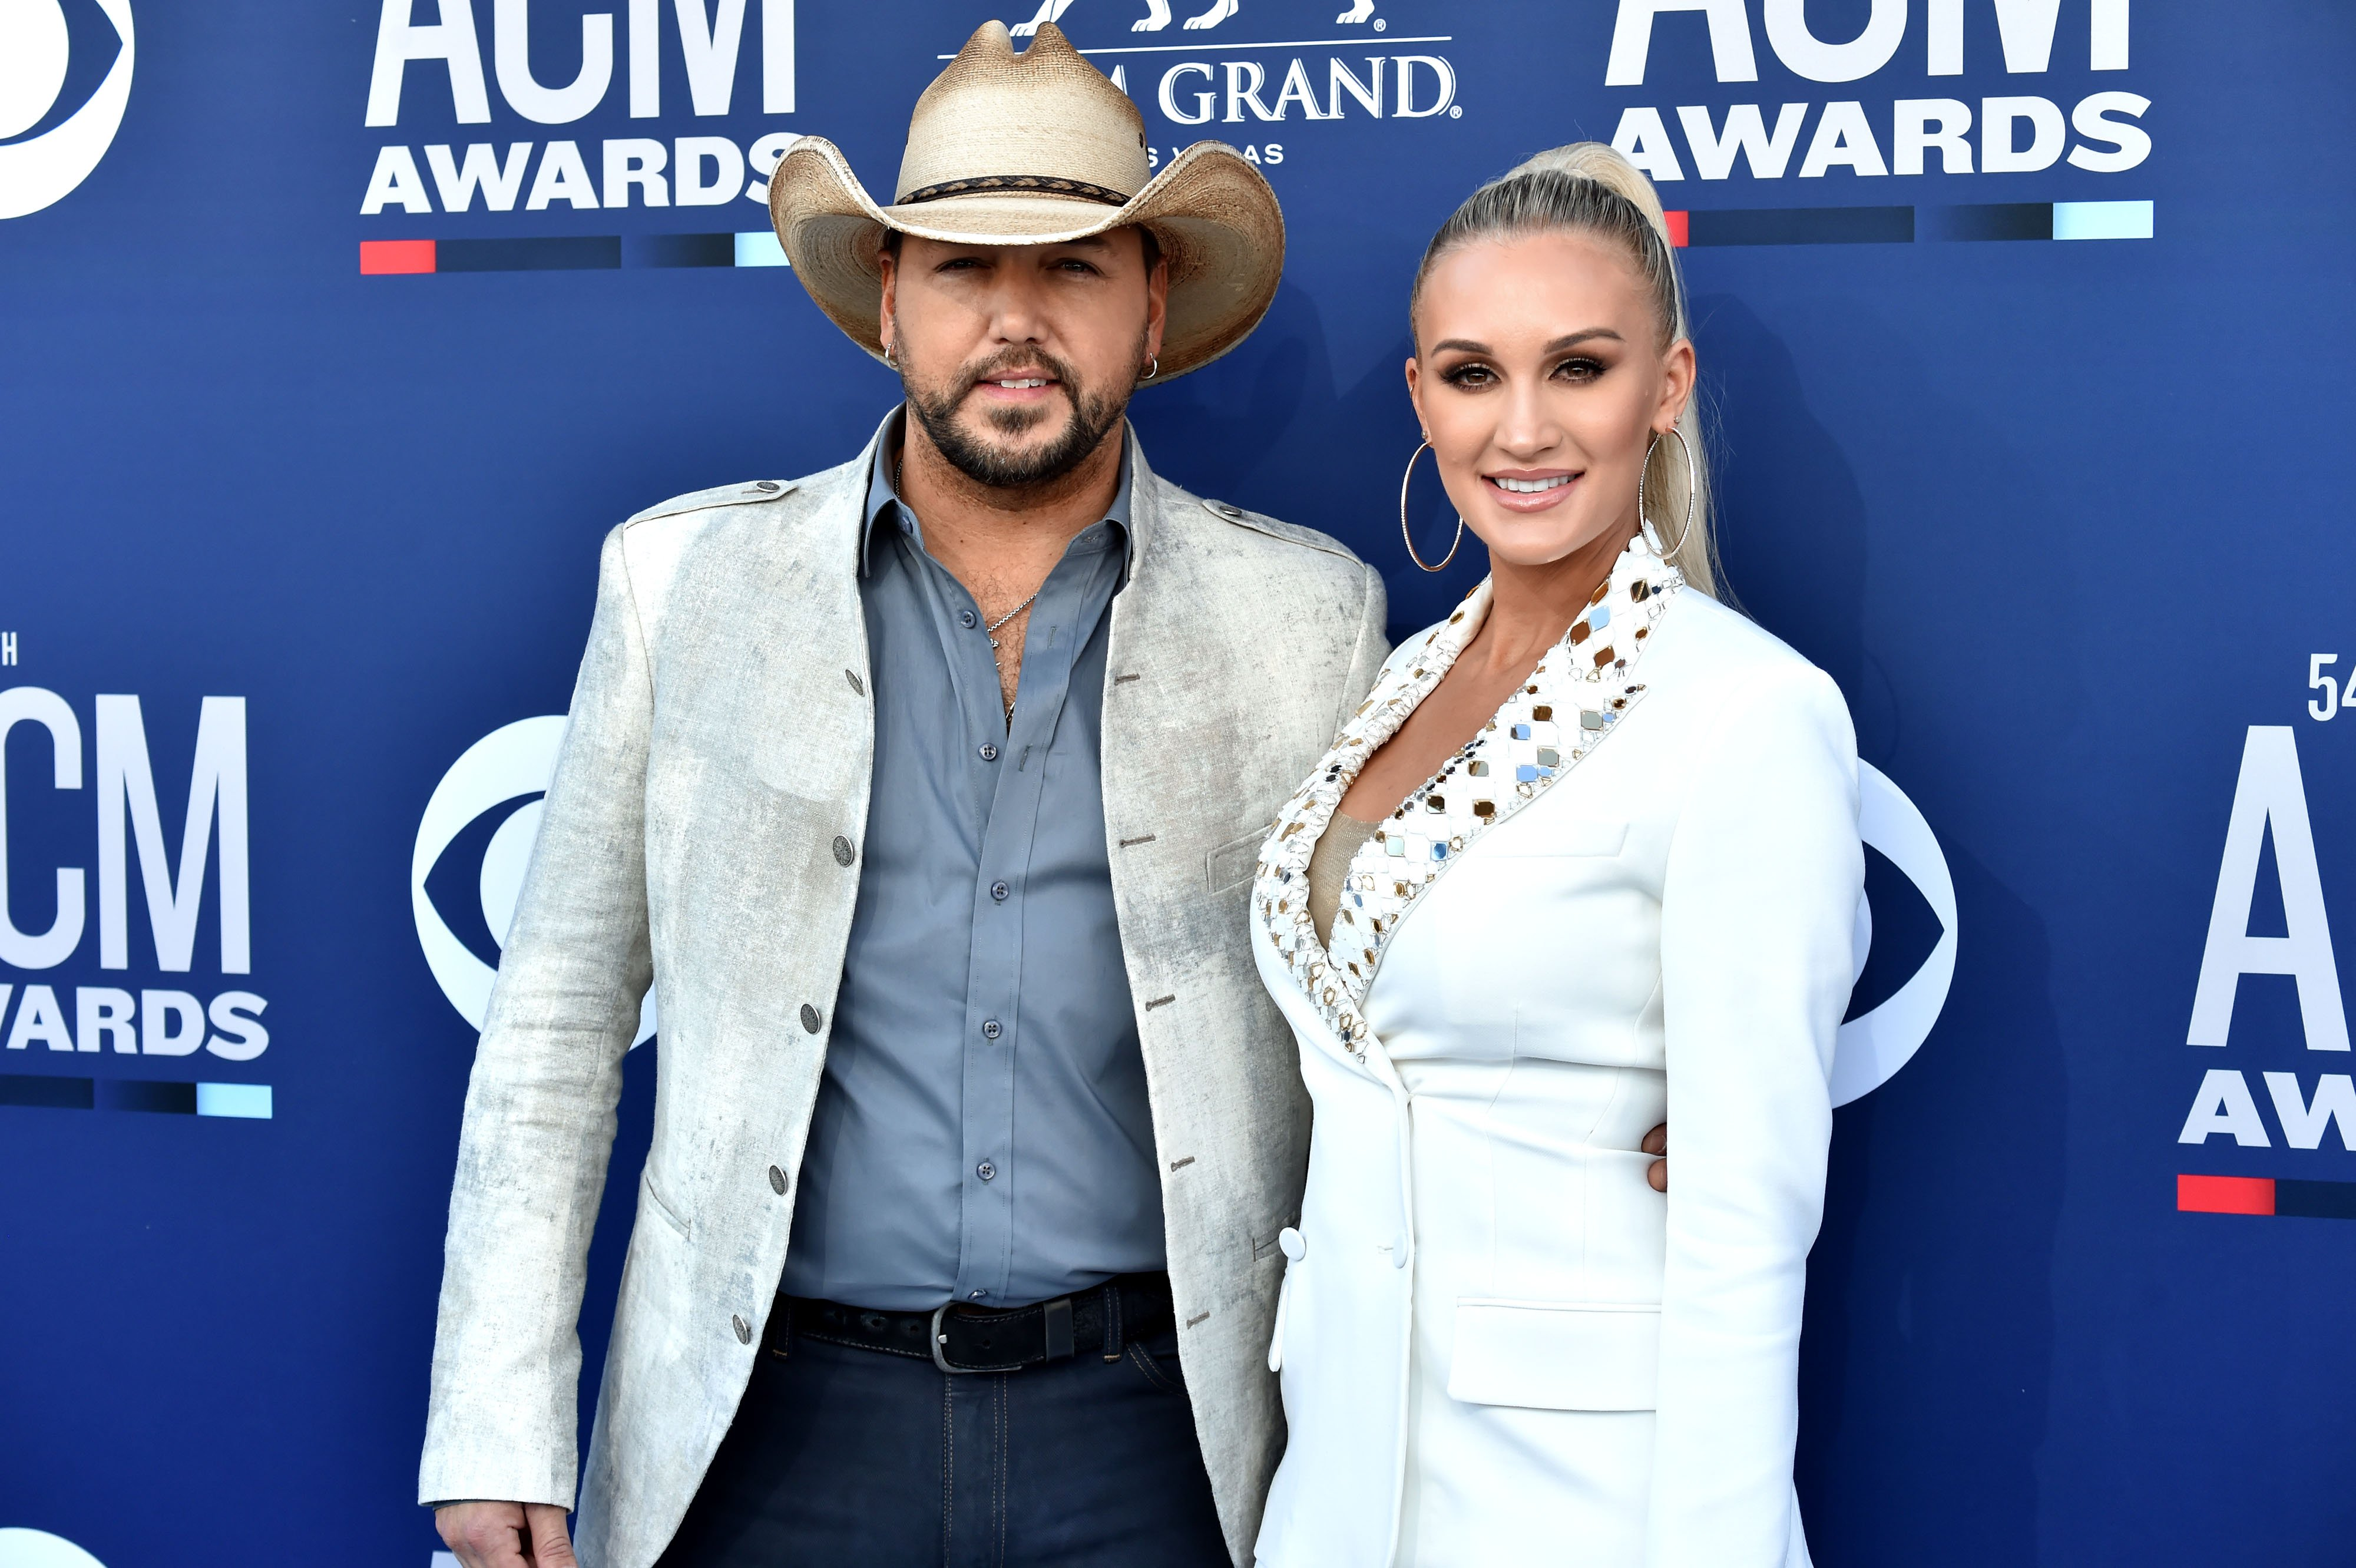 Jason Aldean and Brittany Kerr attending the American Country Music Awards. Source | Photo: Getty Images